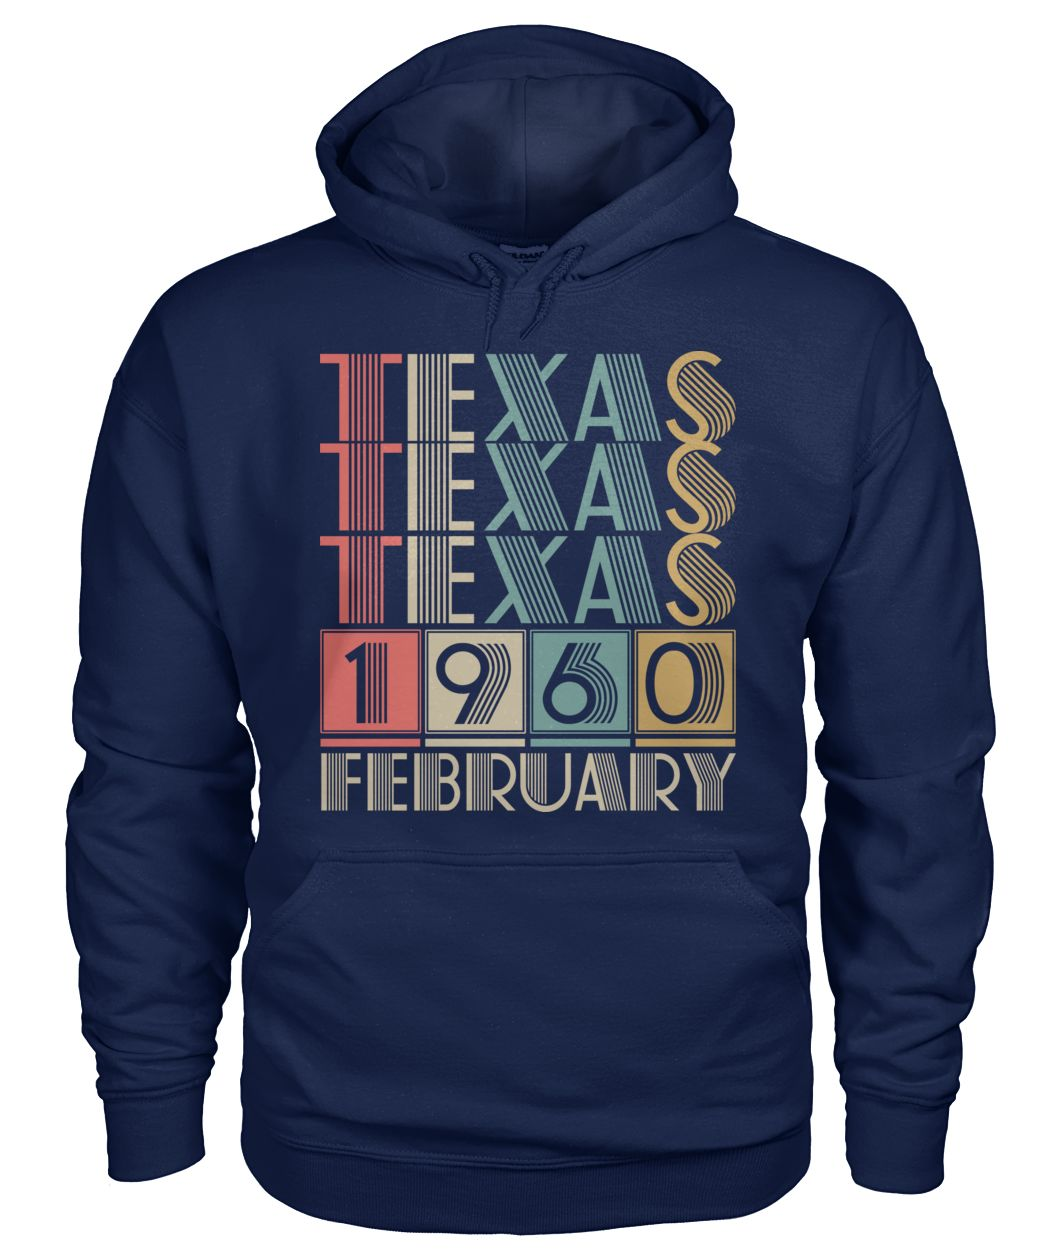 Born in Texas in February 1960 t shirt-Short Sleeves - TEEHOT.COM